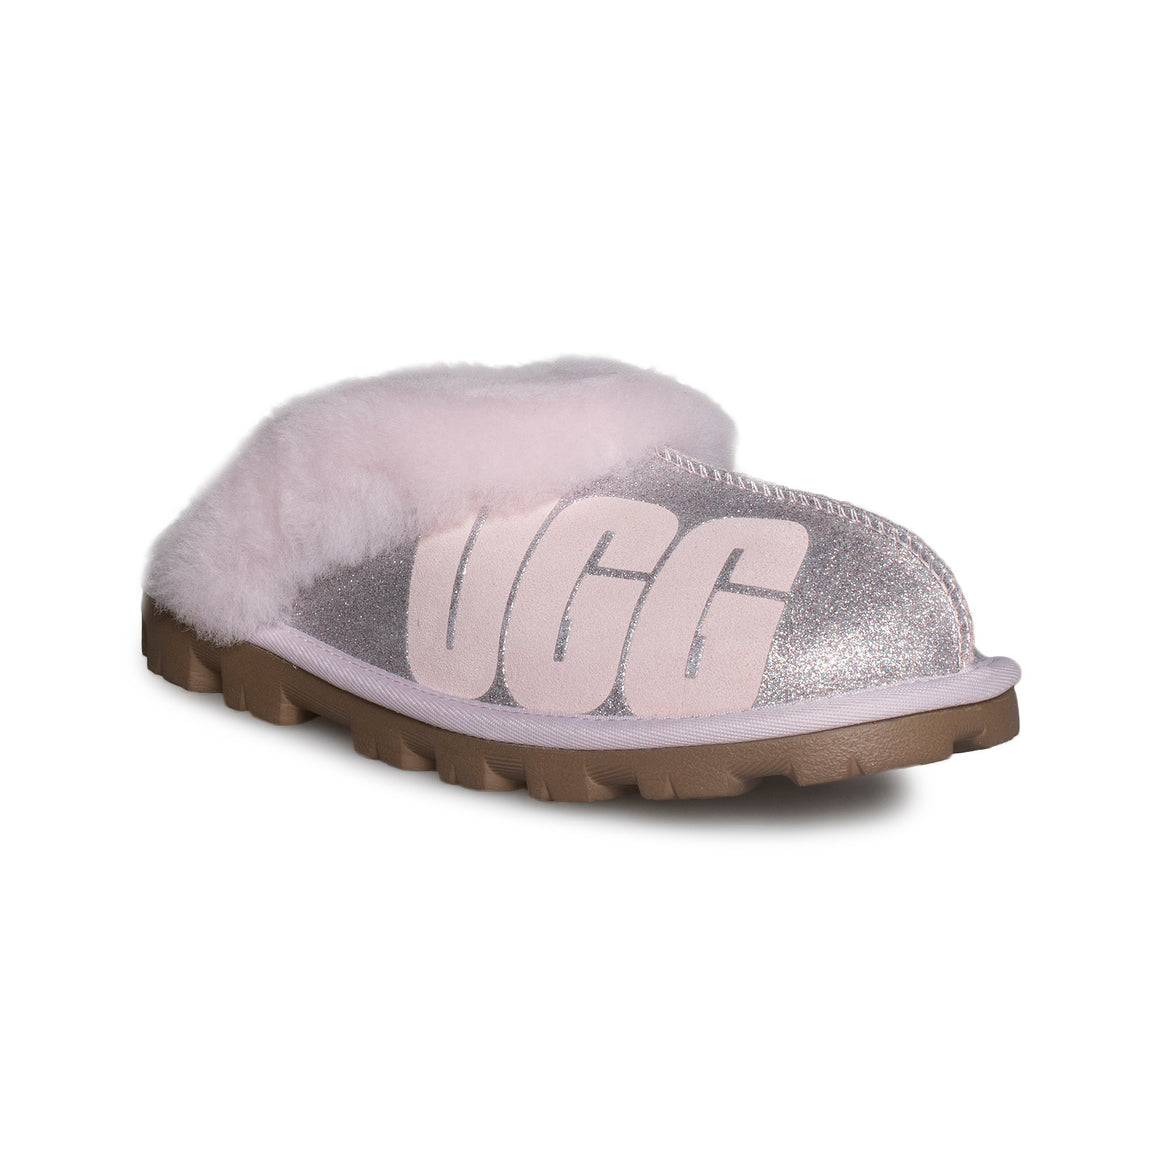 UGG Coquette Sparkle Seashell Pink Slippers - Women's